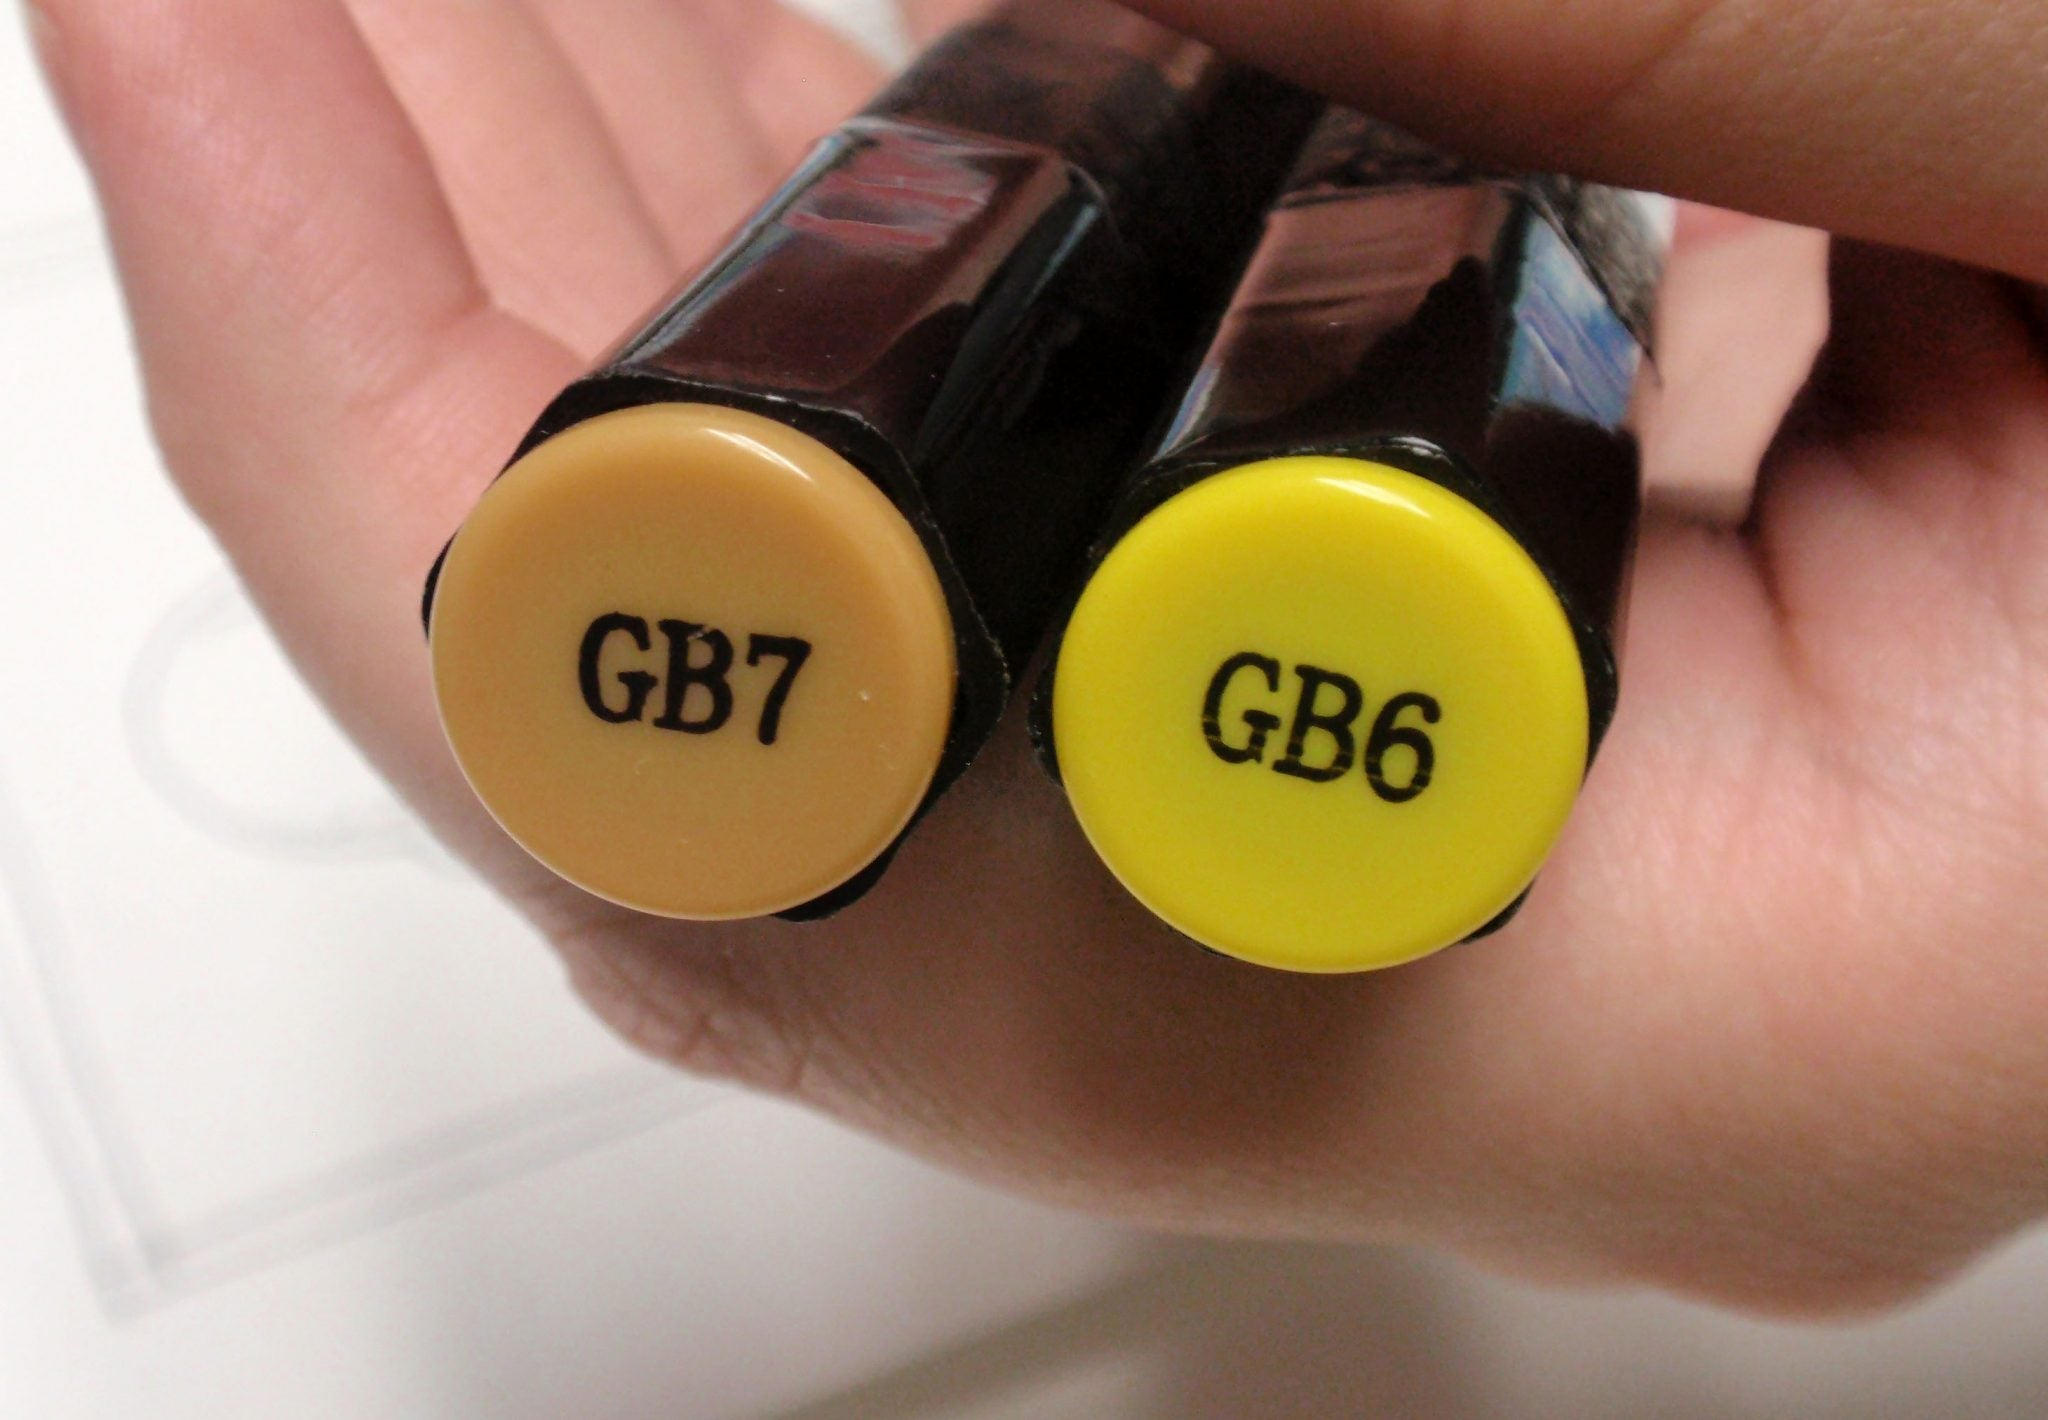 GB6 and GB 7 pens